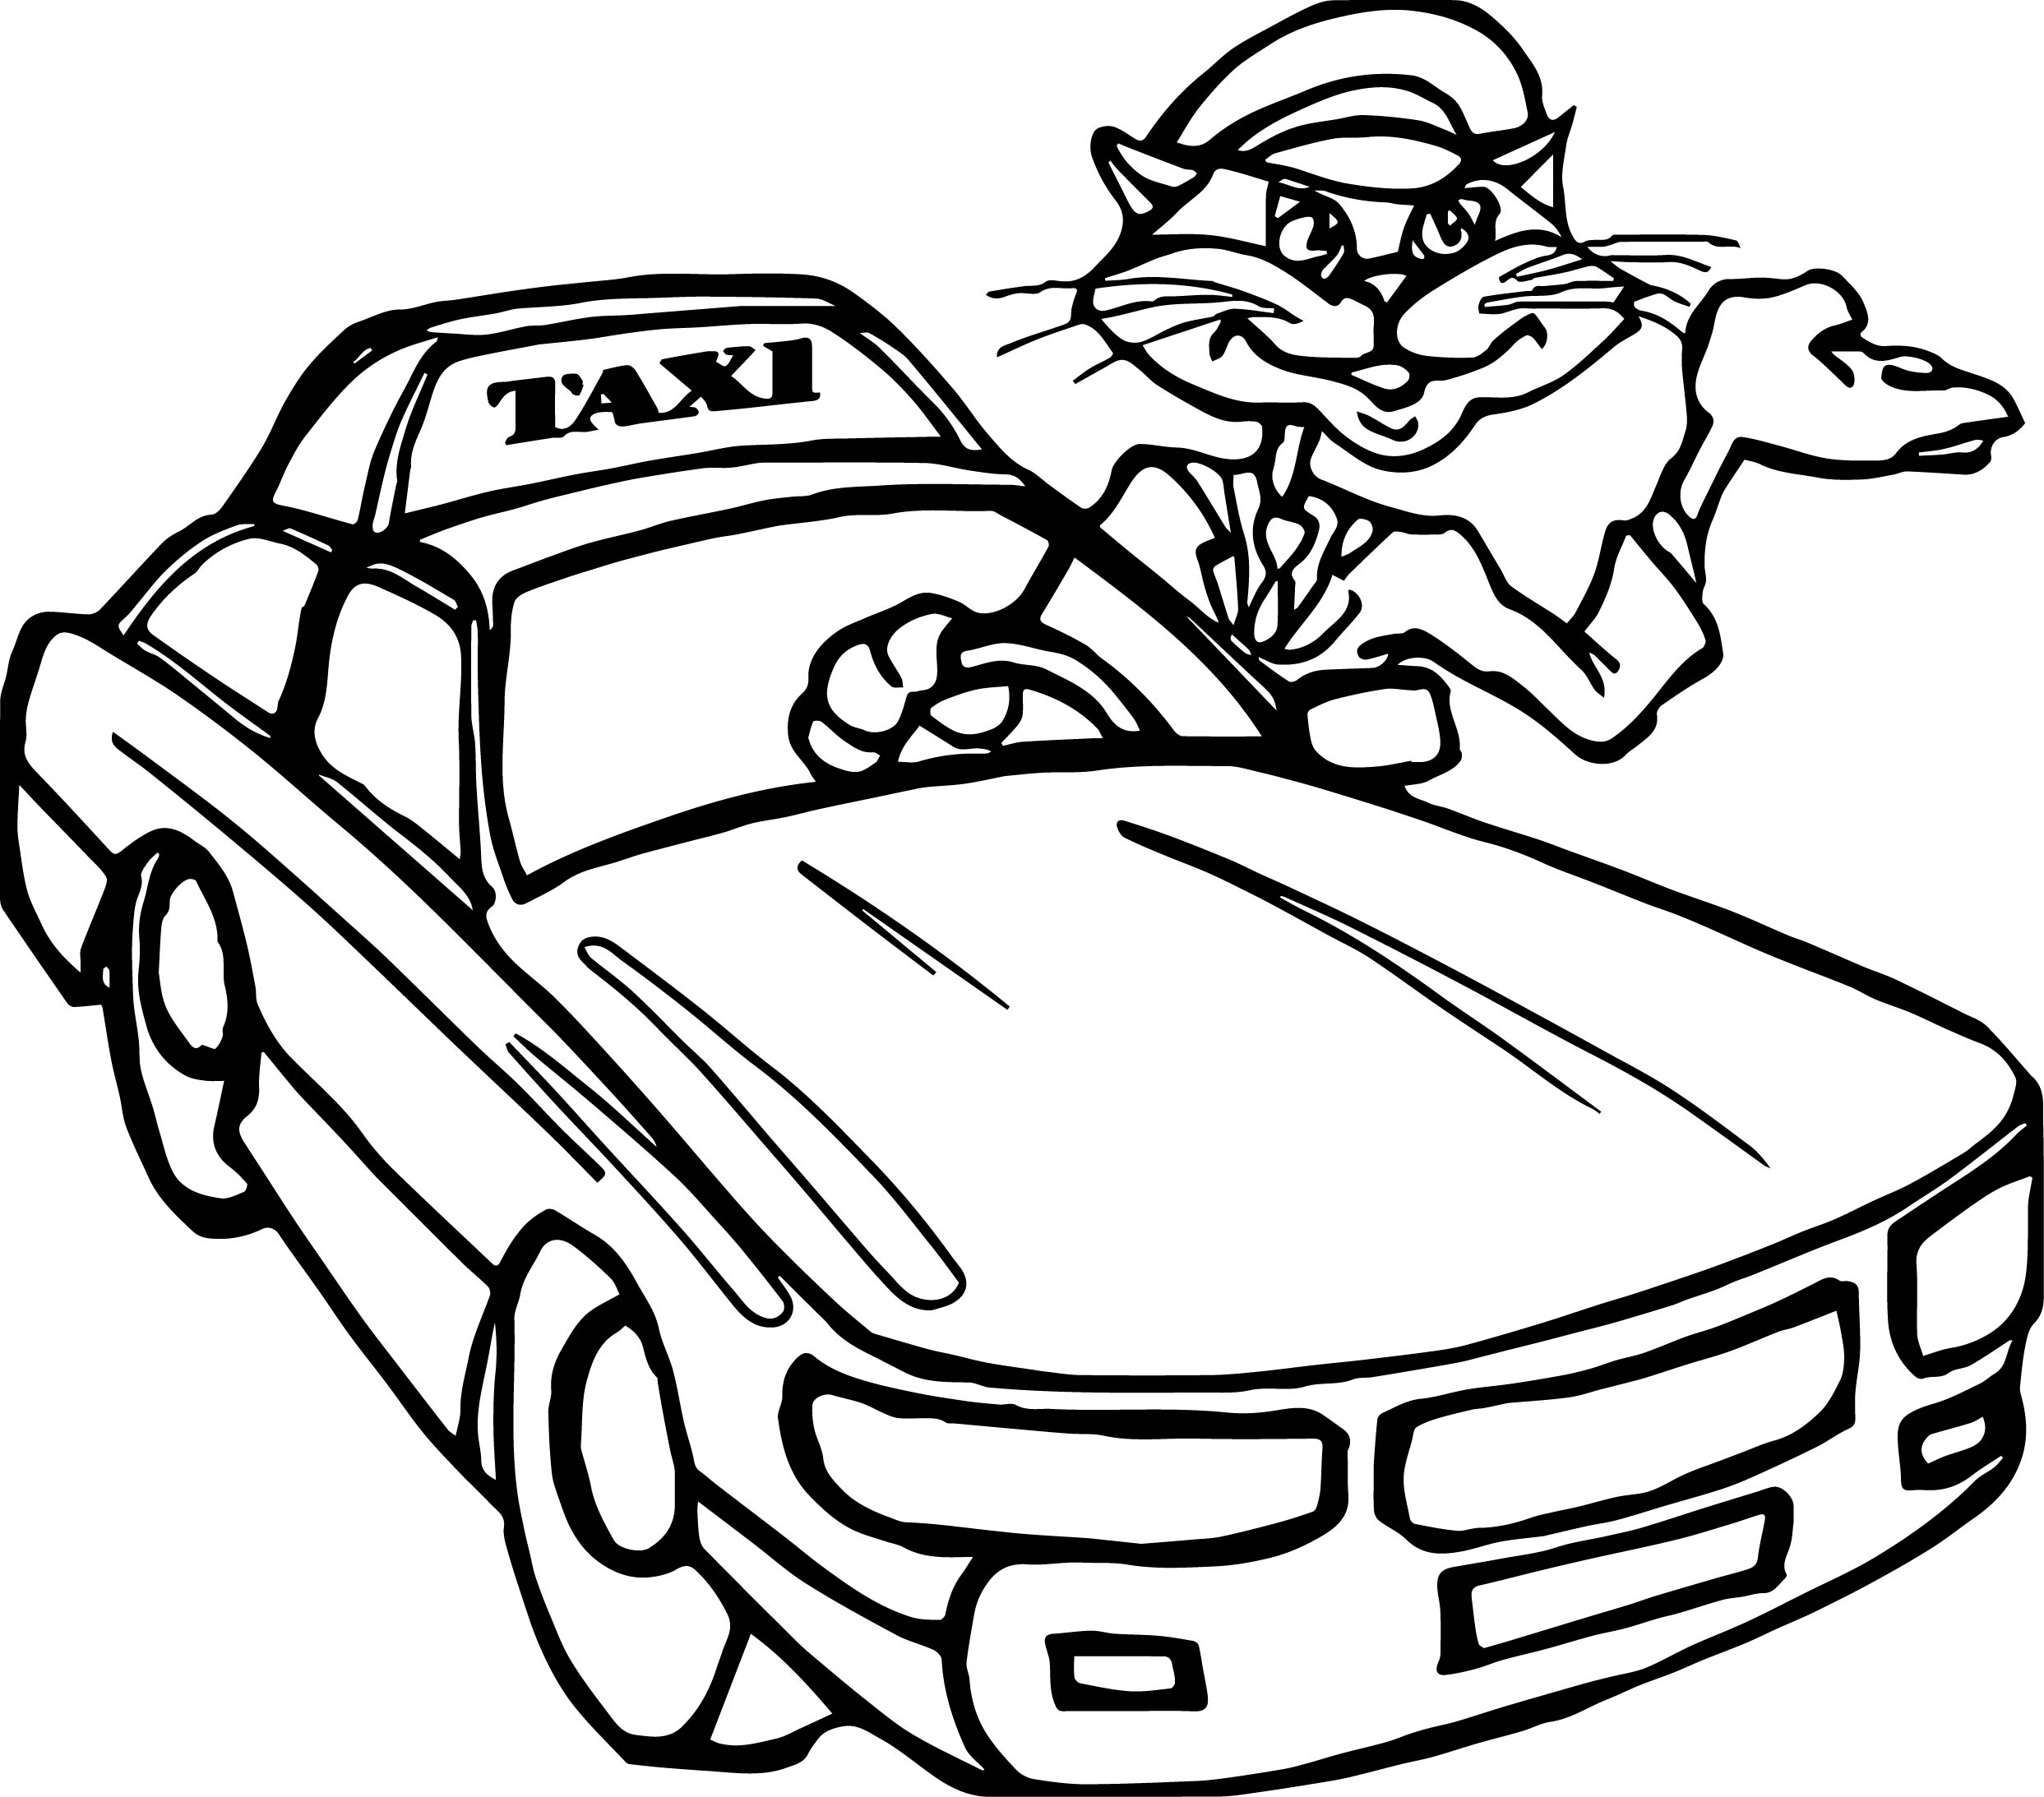 taxi colouring pages taxi coloring pages to download and print for free taxi pages colouring